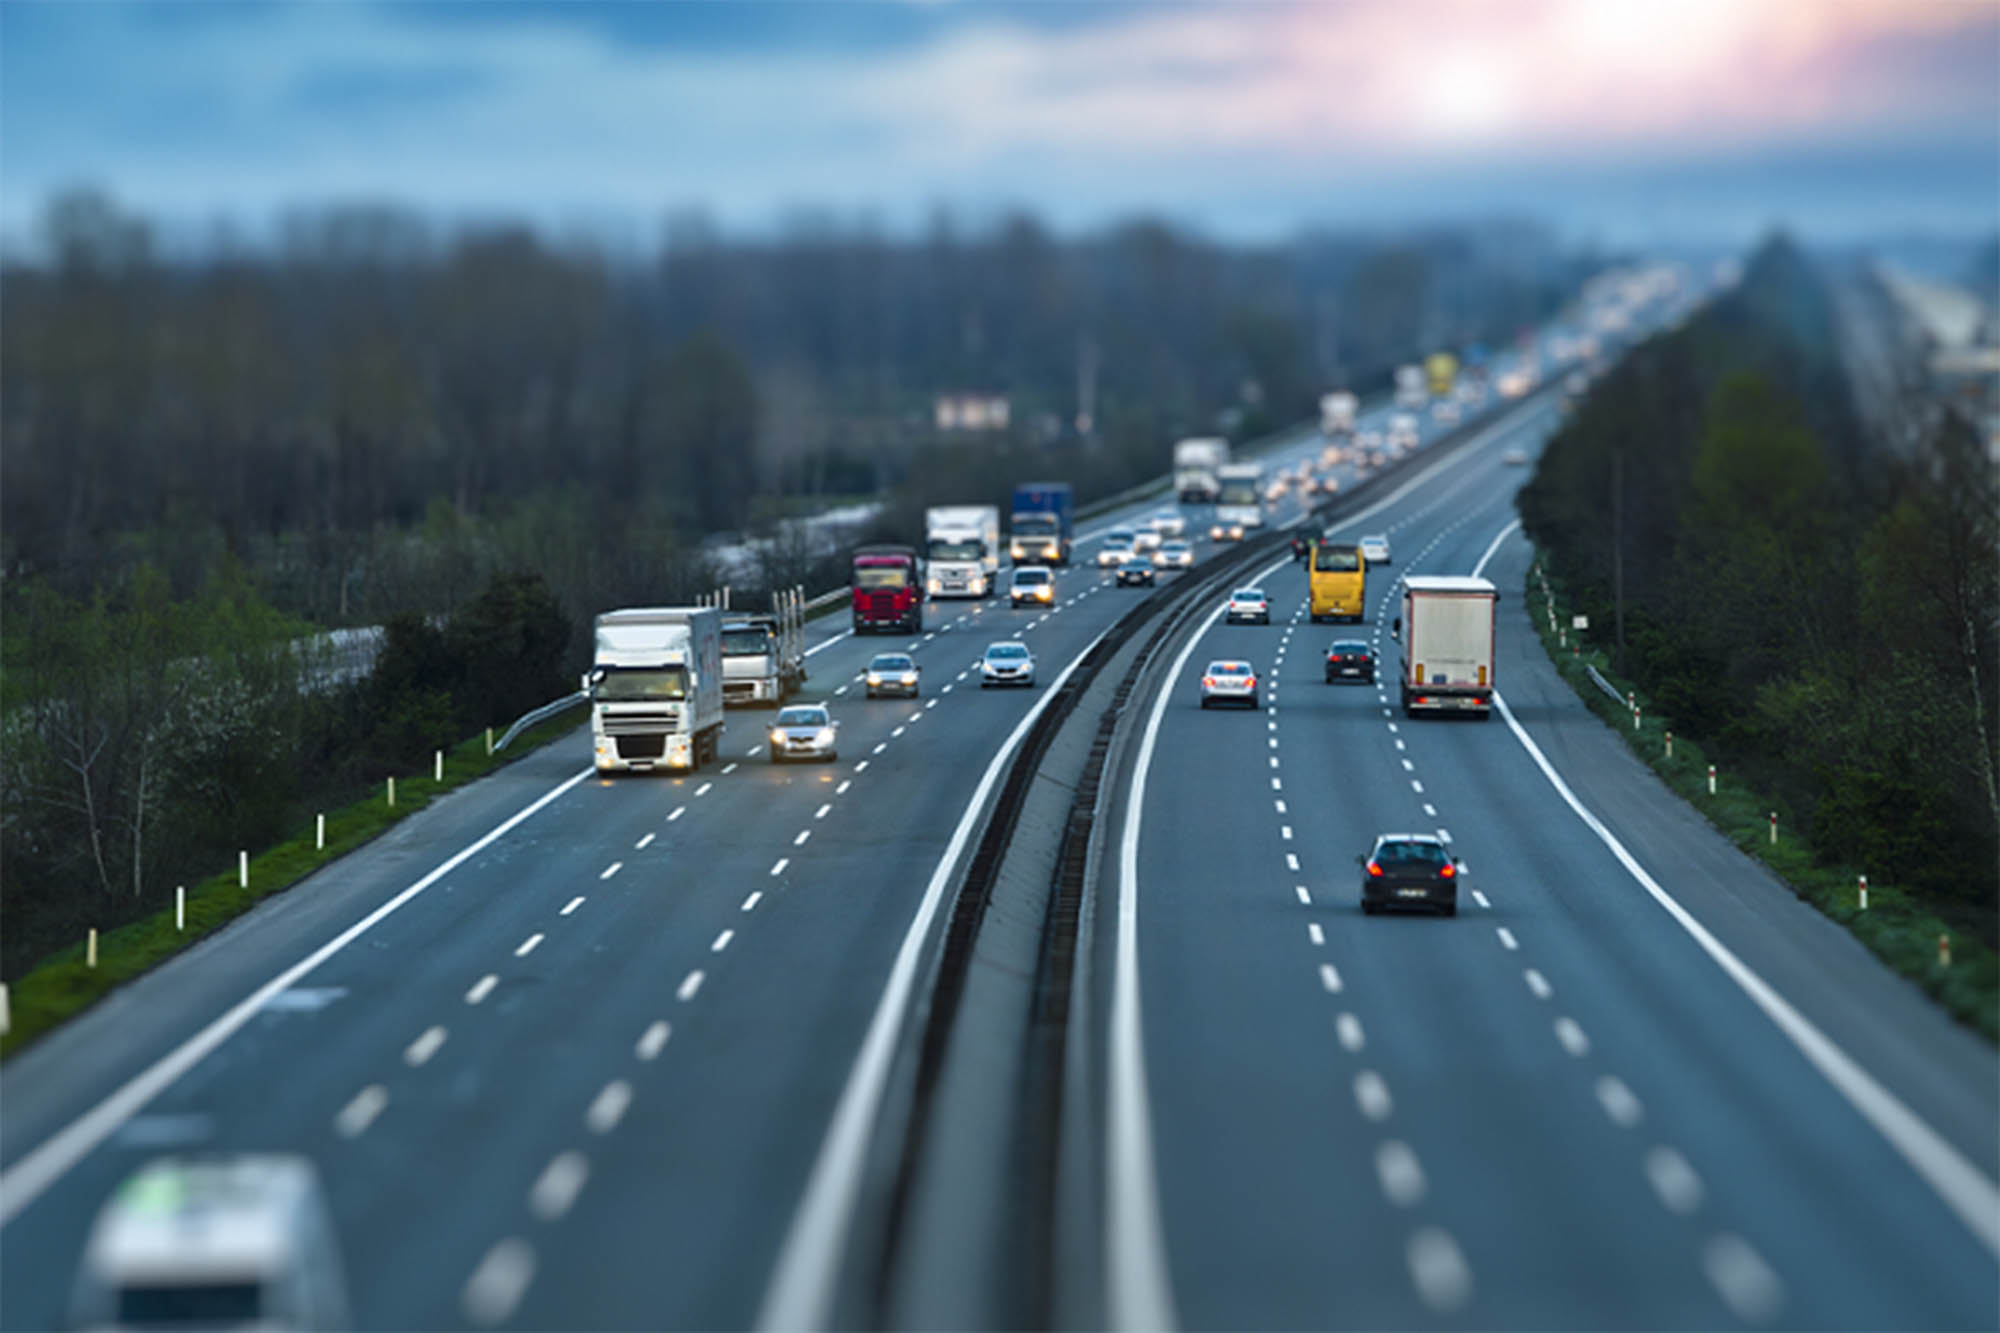 cars and trucks on a six lane highway